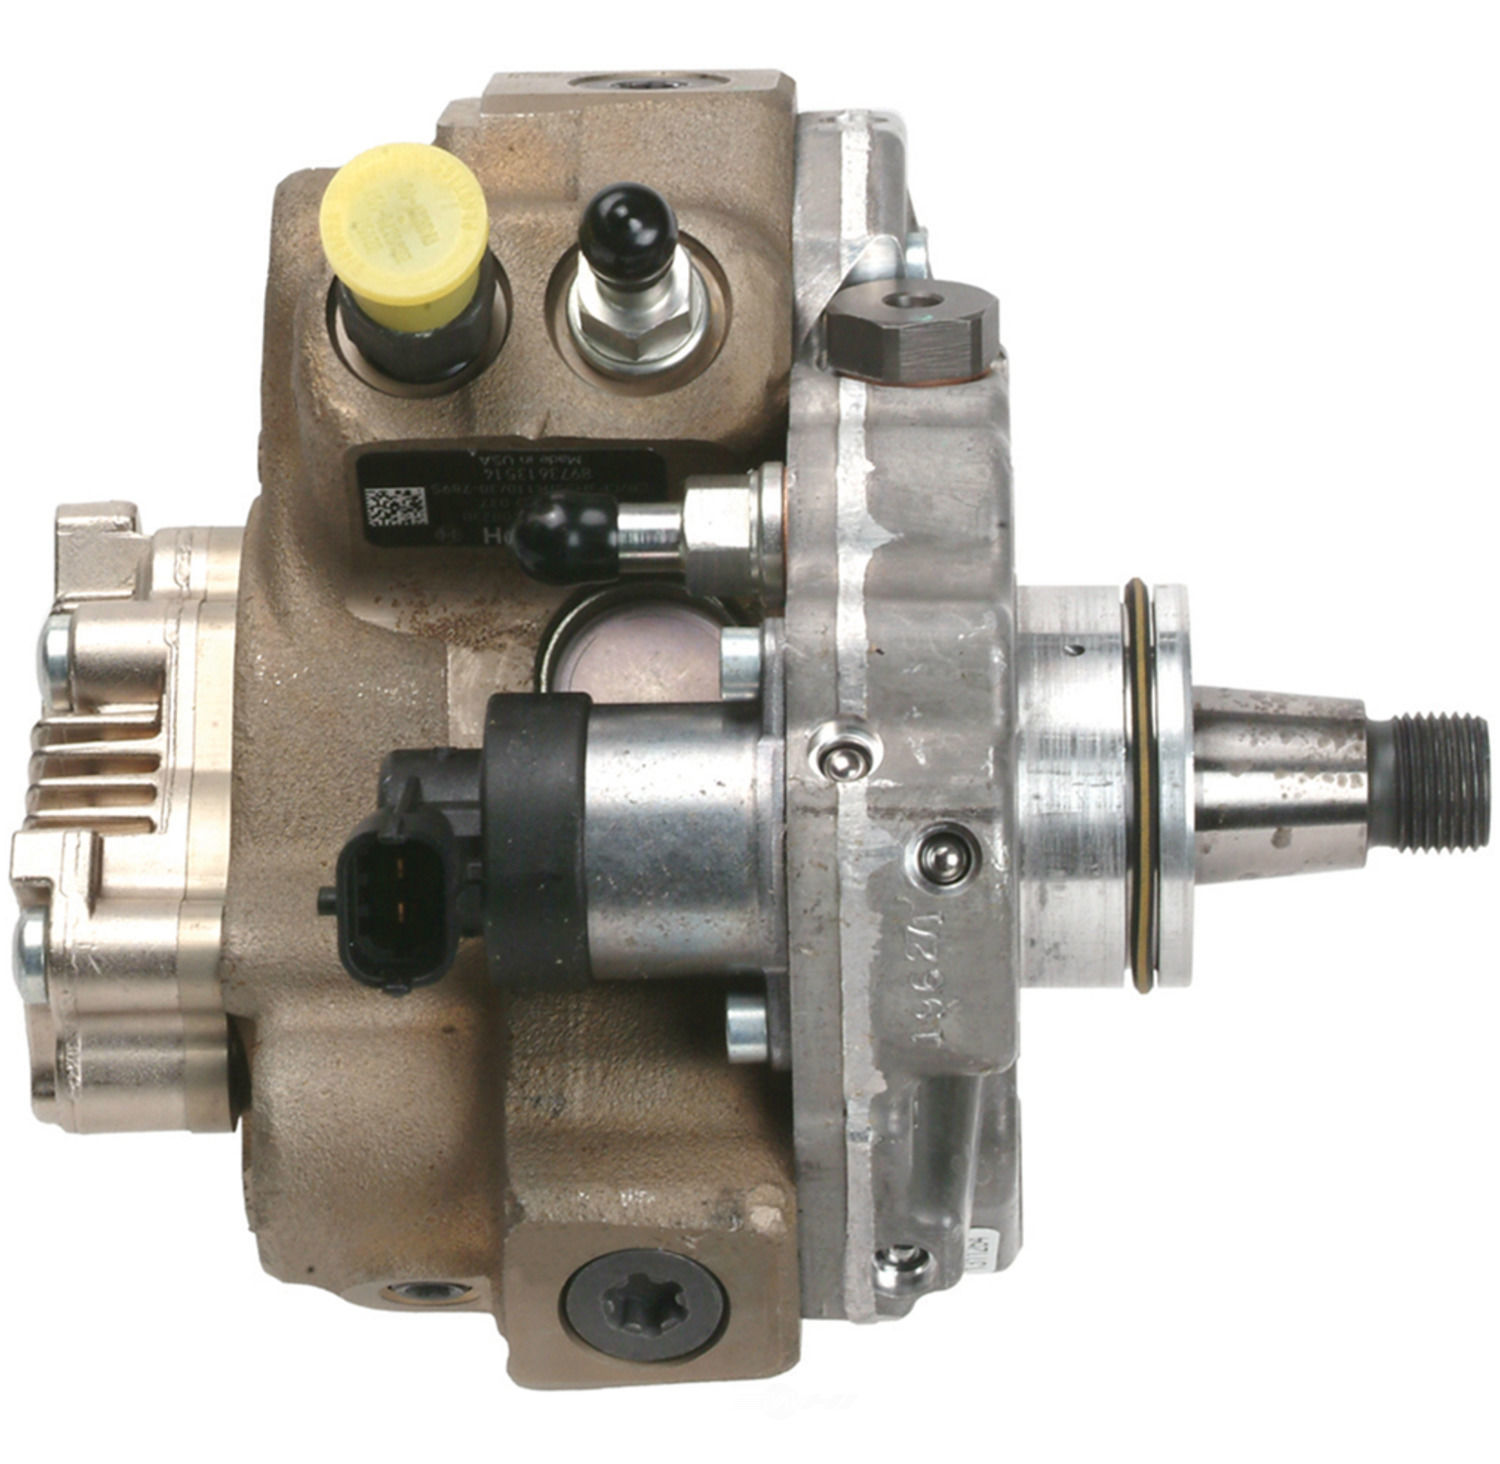 Cardone A 1 Fuel Injection Pump Part Number 2h 113 Remanufactured A1c